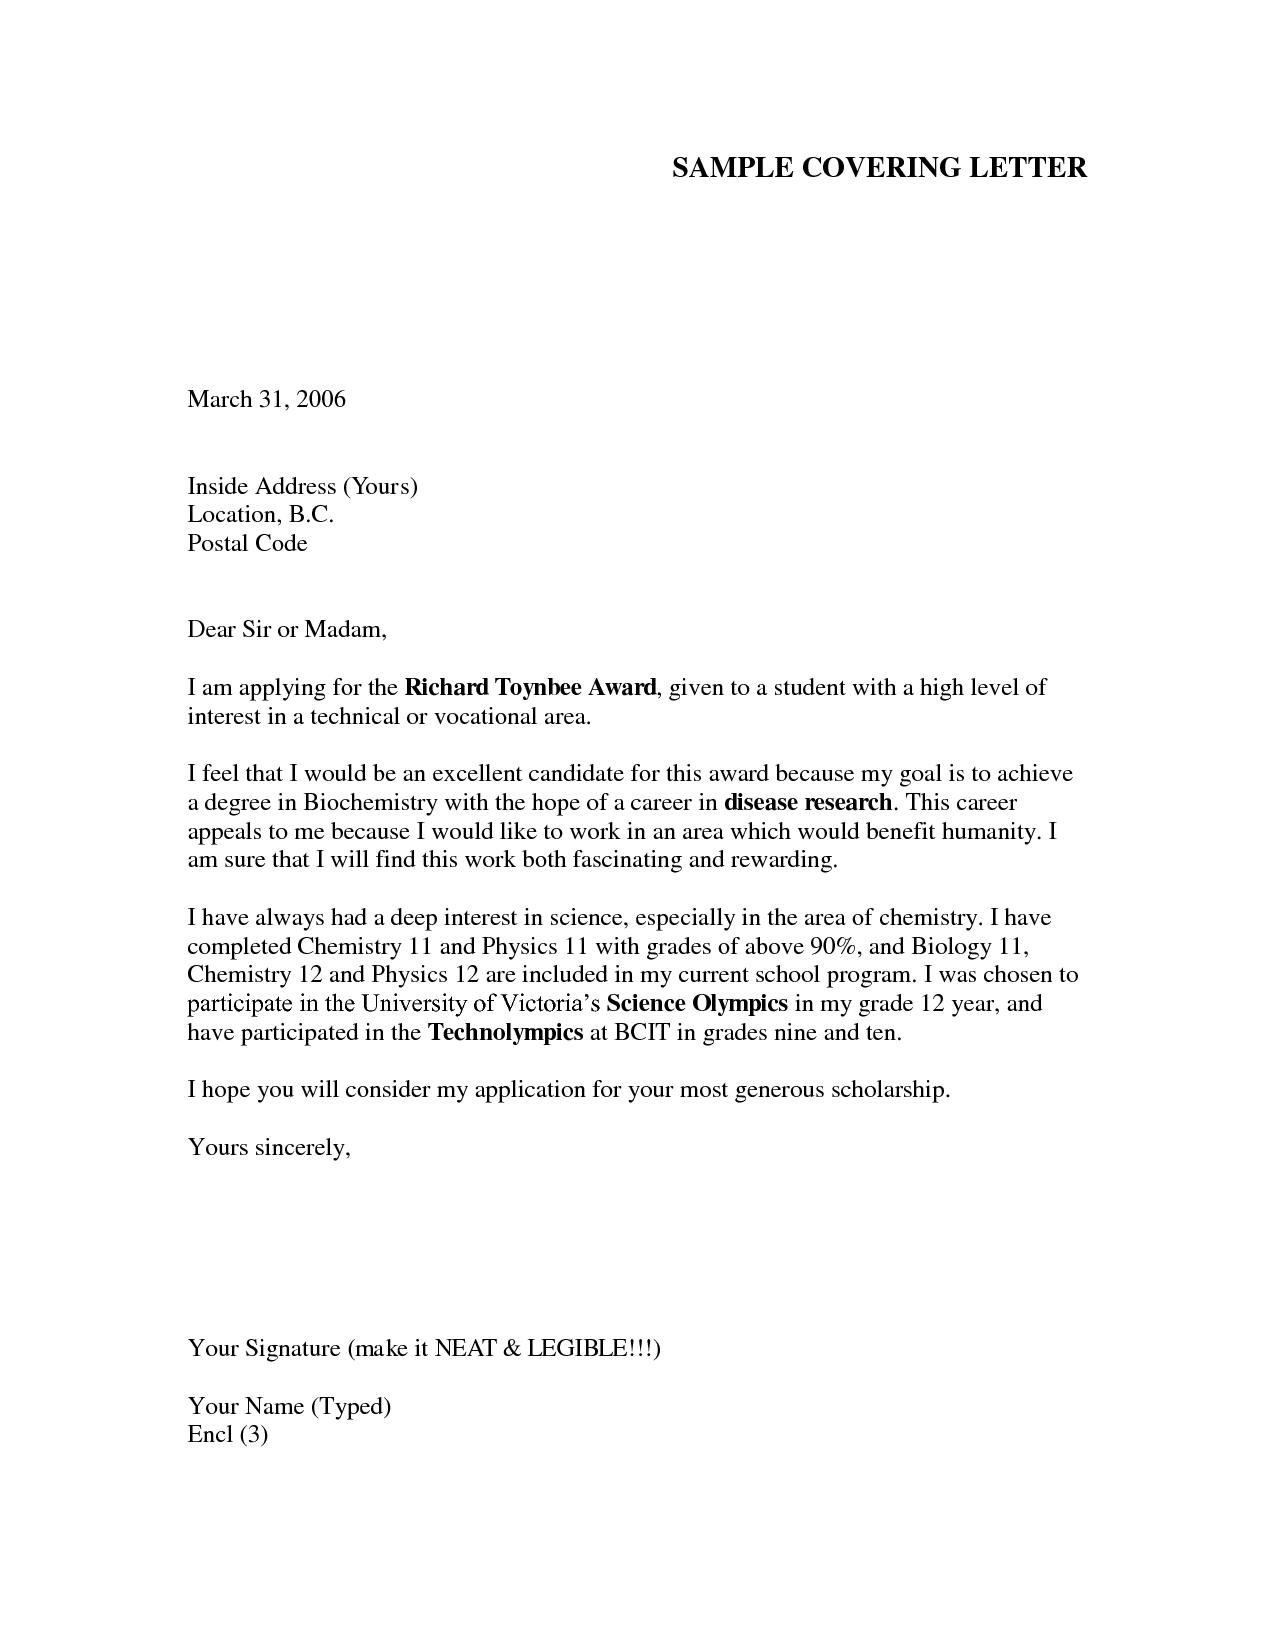 Job cover letter pakistan writing a formal request letter sample thecheapjerseys Gallery